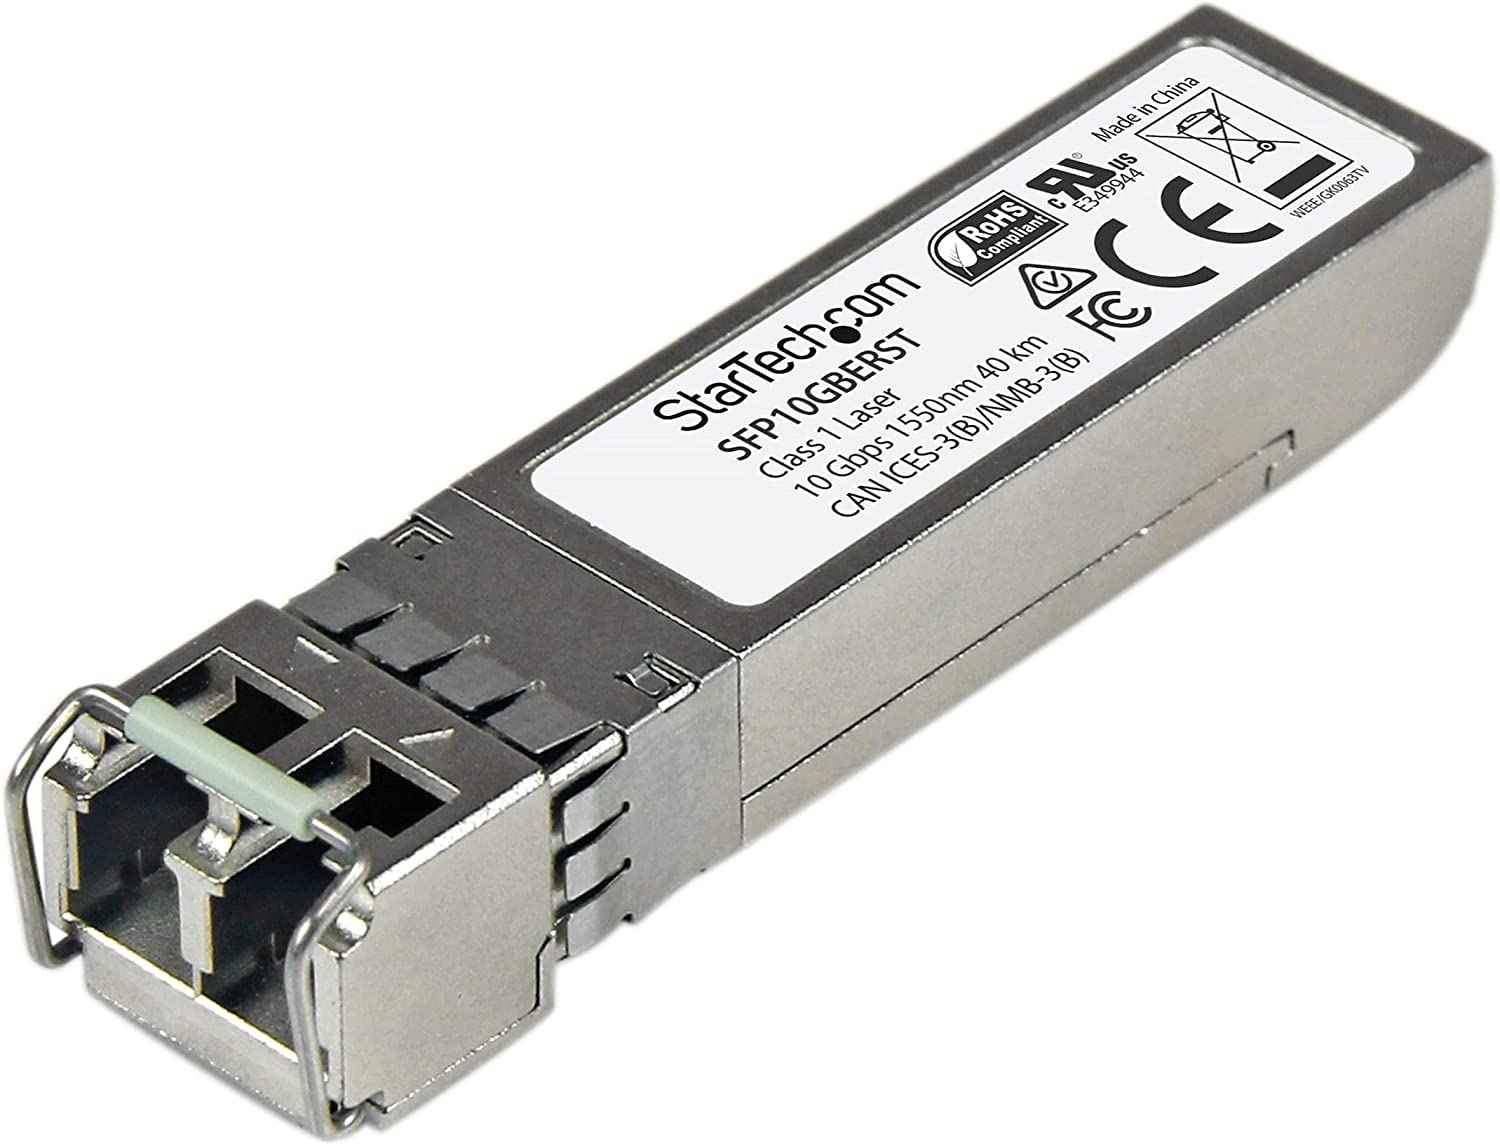 StarTech.com MSA Uncoded Easy-to-use Compatible SFP+ Module - 1 10GBASE-ER Bombing free shipping